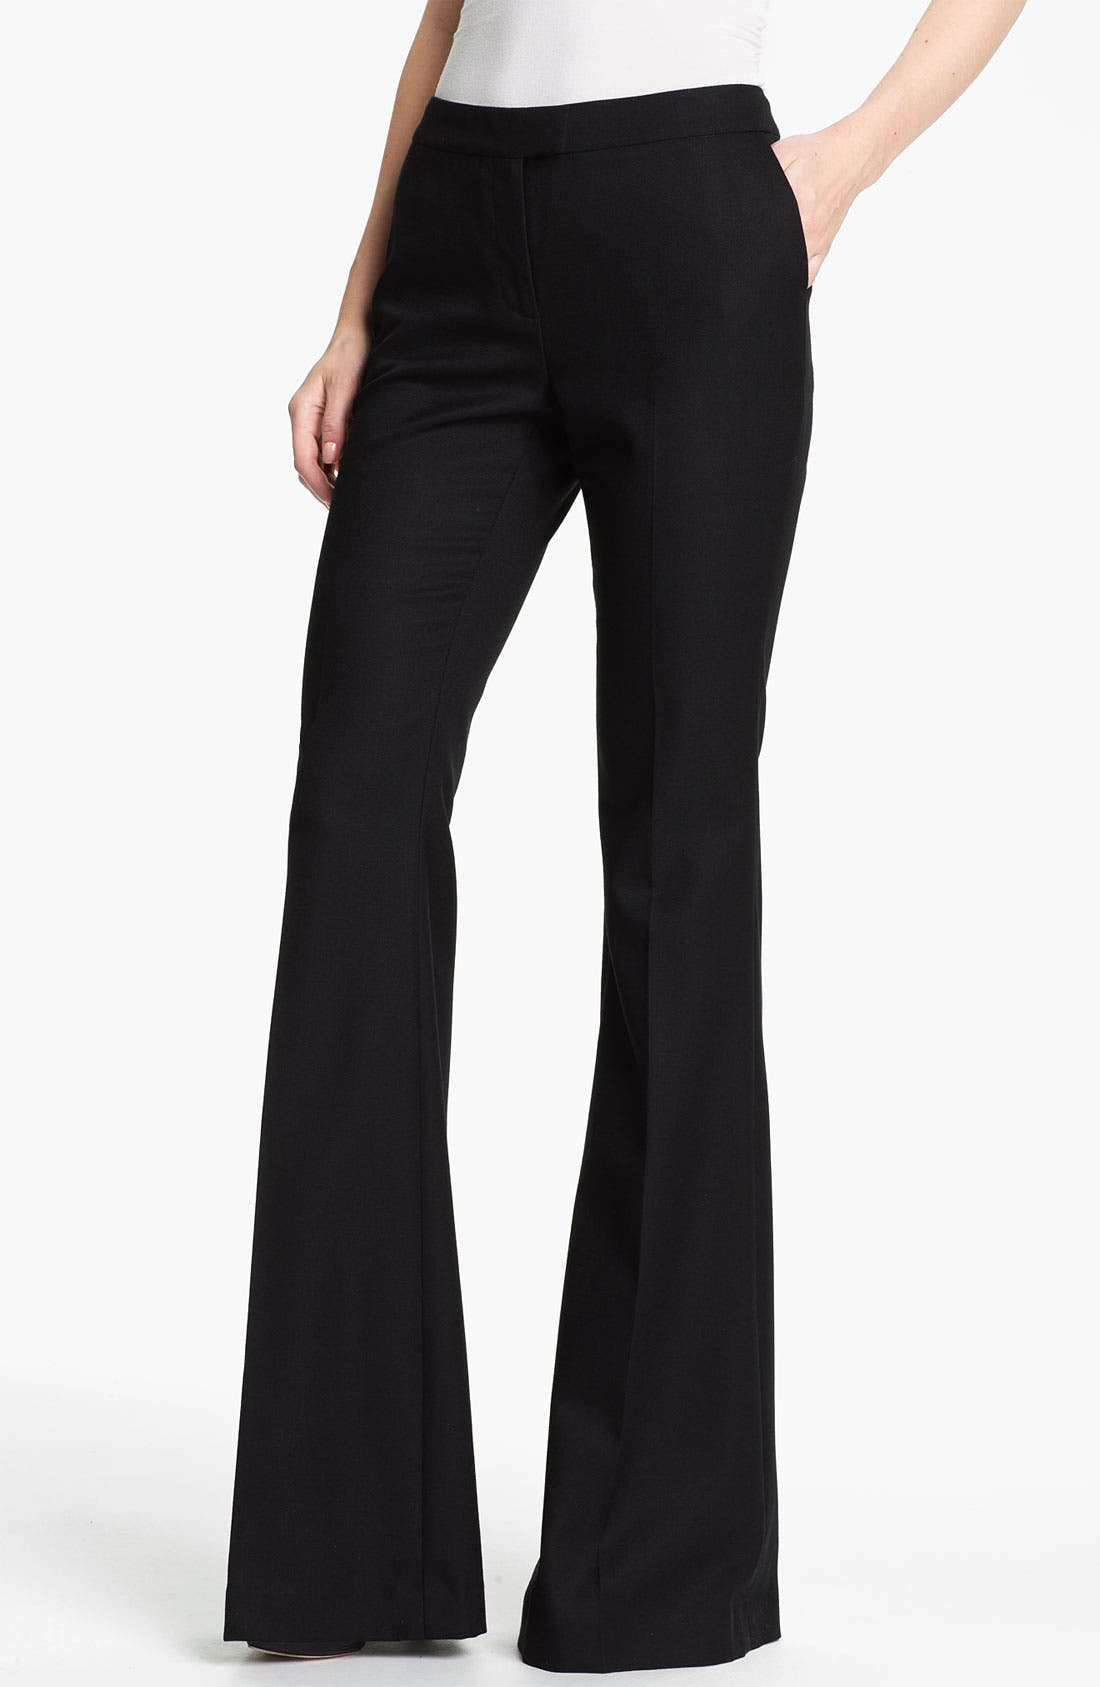 Alternate Image 1 Selected - Rachel Zoe 'Rachel' Flare Leg Pants (Long)